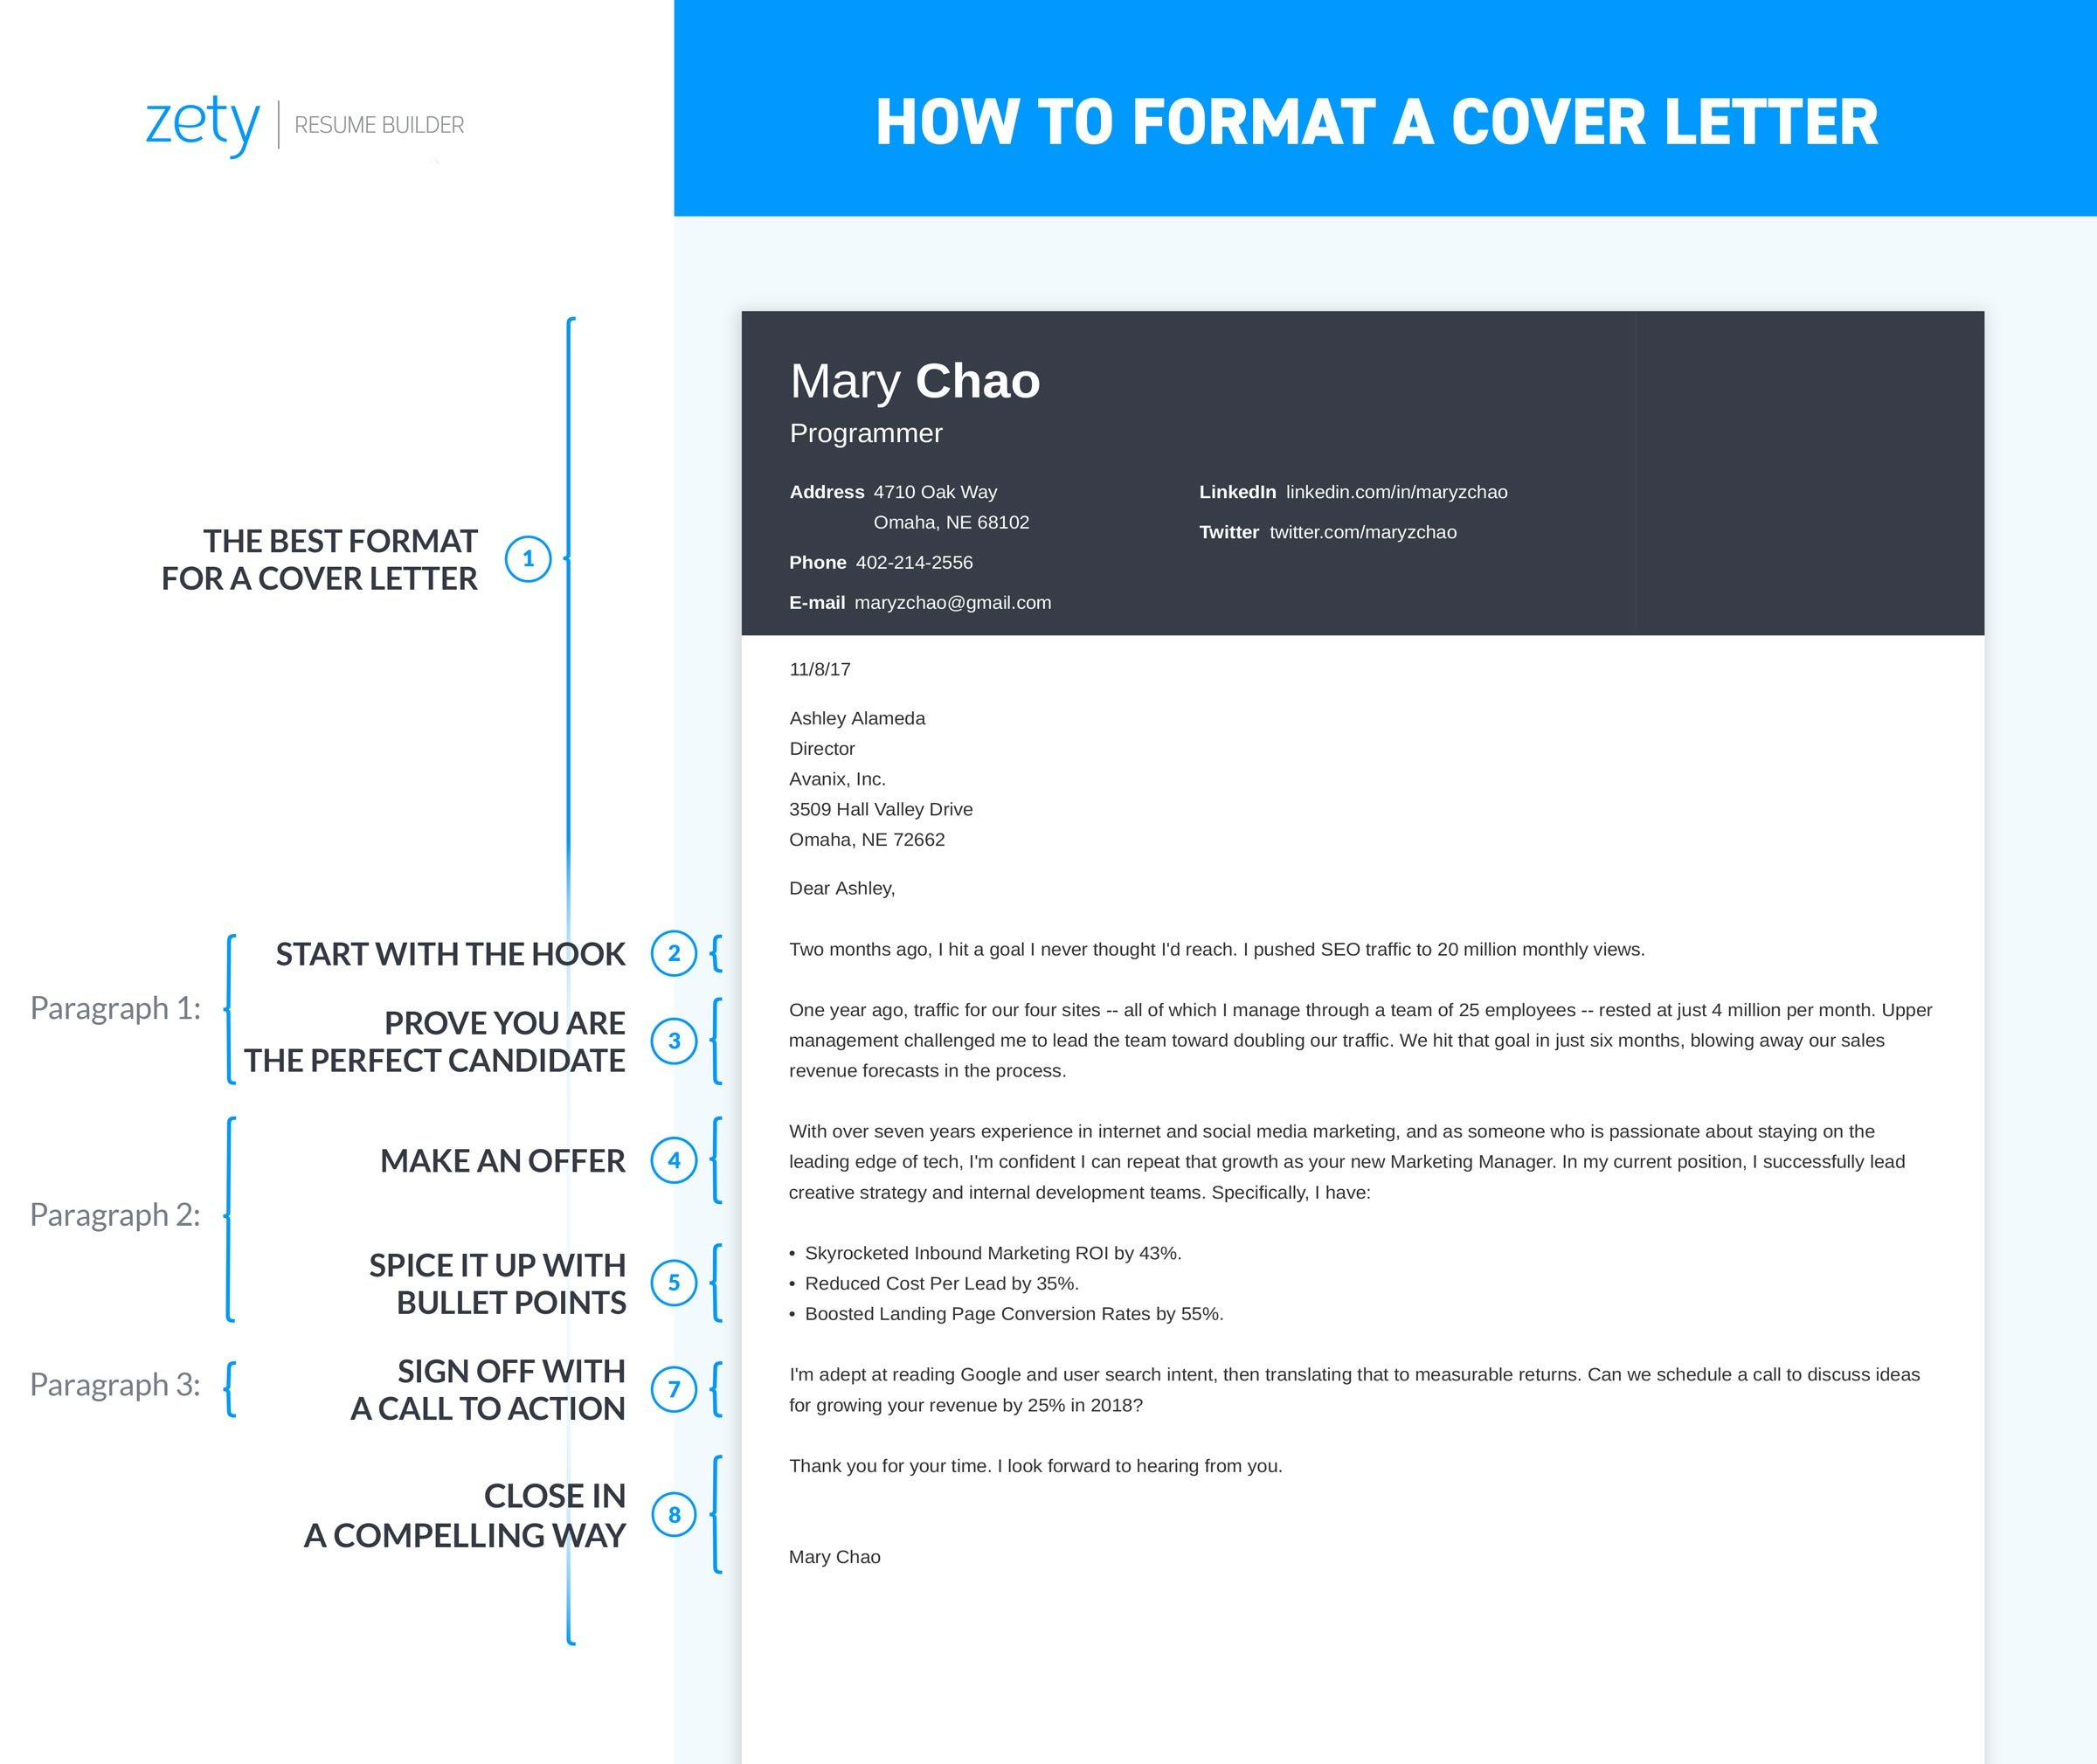 Proper Cover Letter Format How To Guide 12 Ready To Use Layouts - Format-for-cover-letter